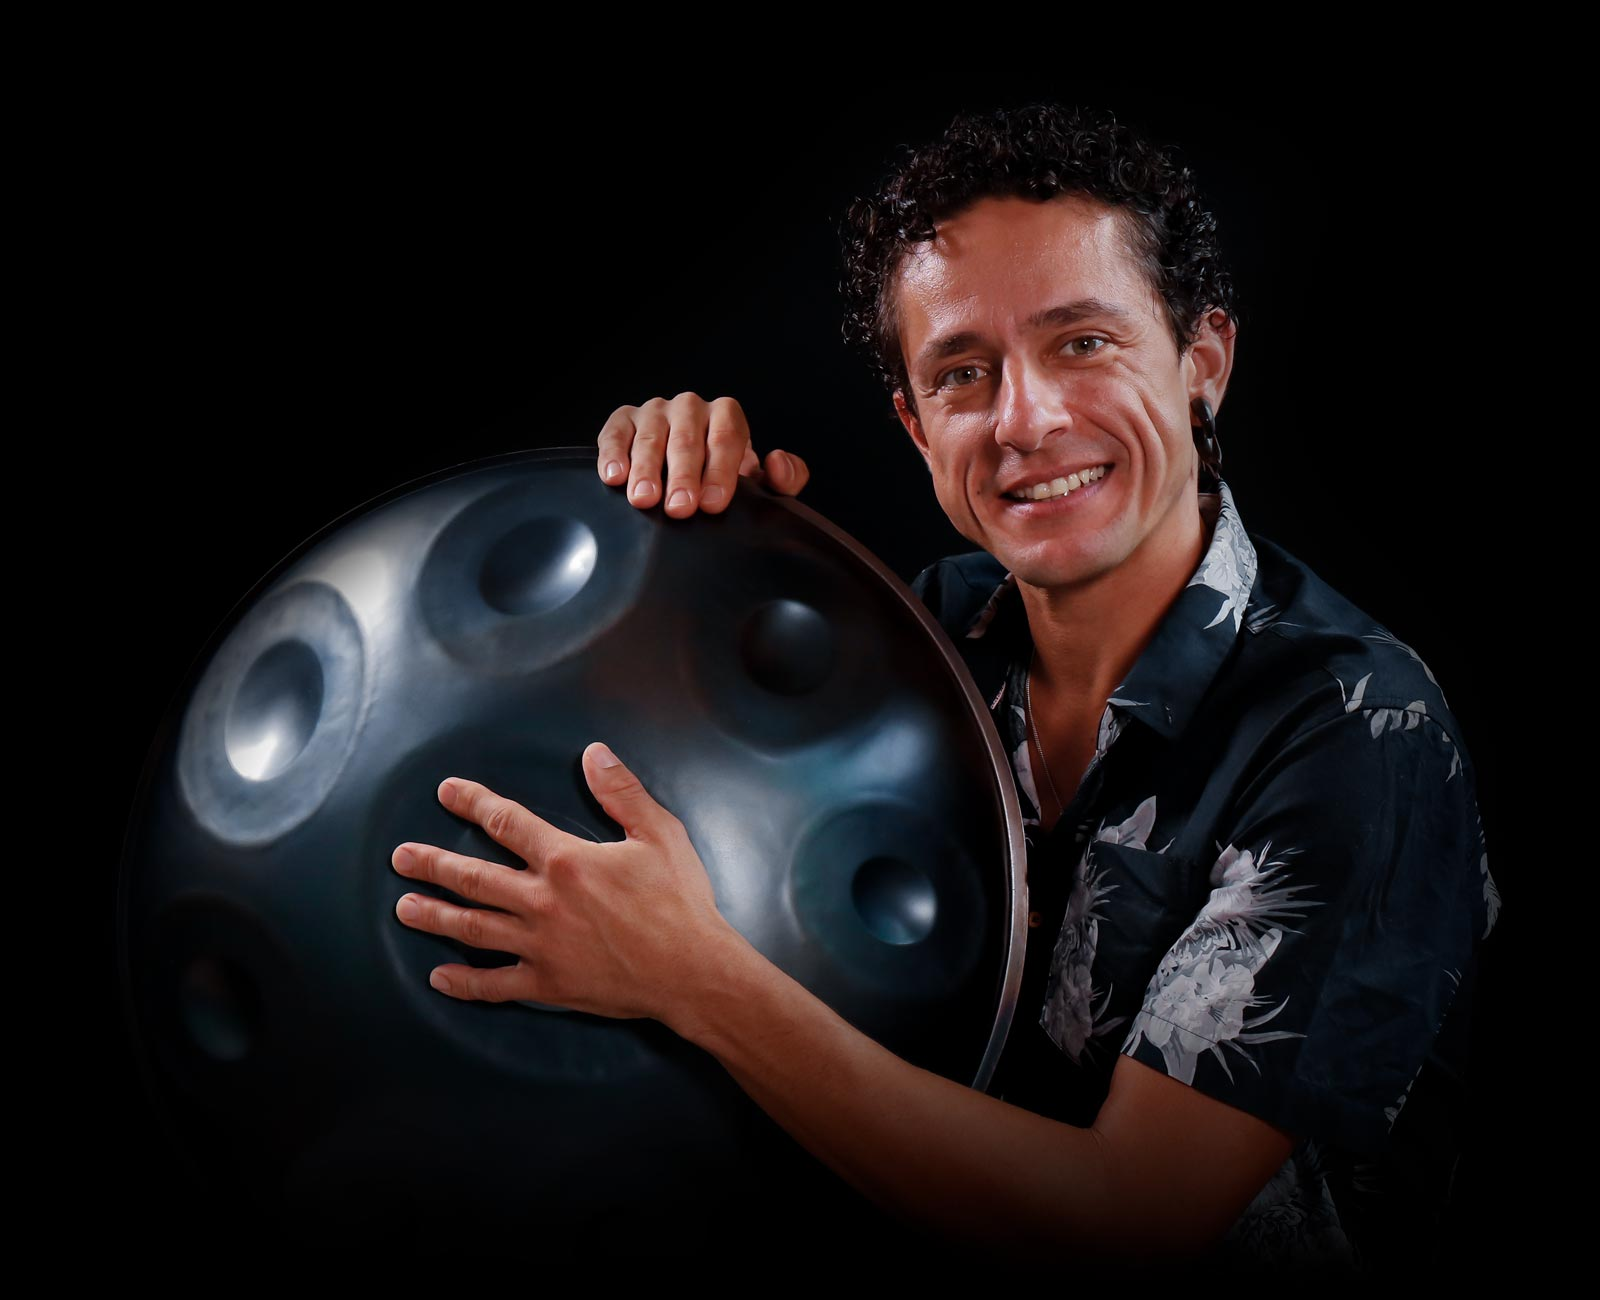 Alexandre Lora teaches handpan